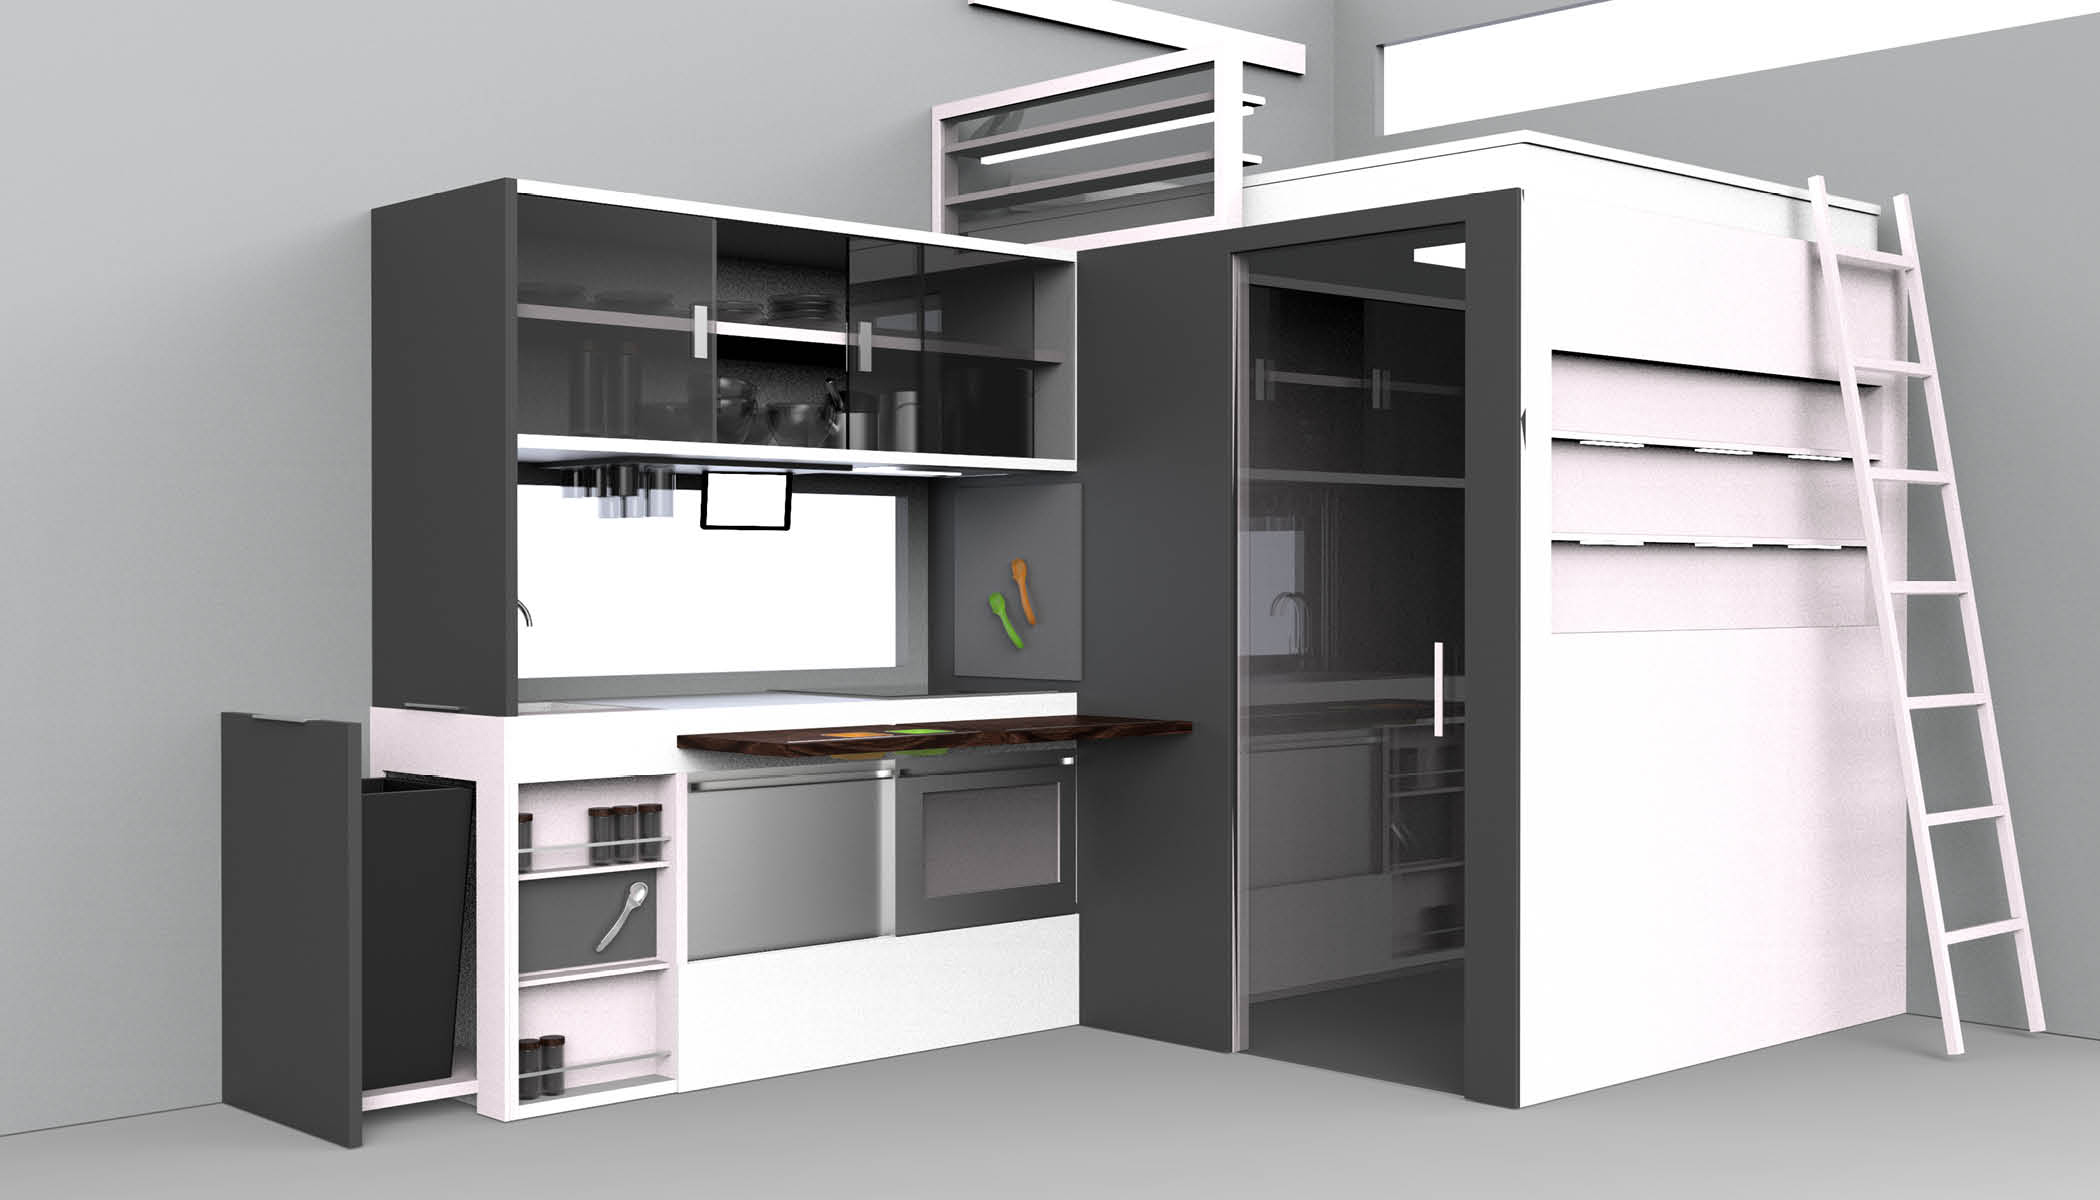 Exceptional Micro Kitchen Design Ideas Part - 8: Creating A Functional Micro Kitchen GE S FirstBuild Debuts Community  Challenge Winners Business Wire. Micro Kitchen Design Ideas.